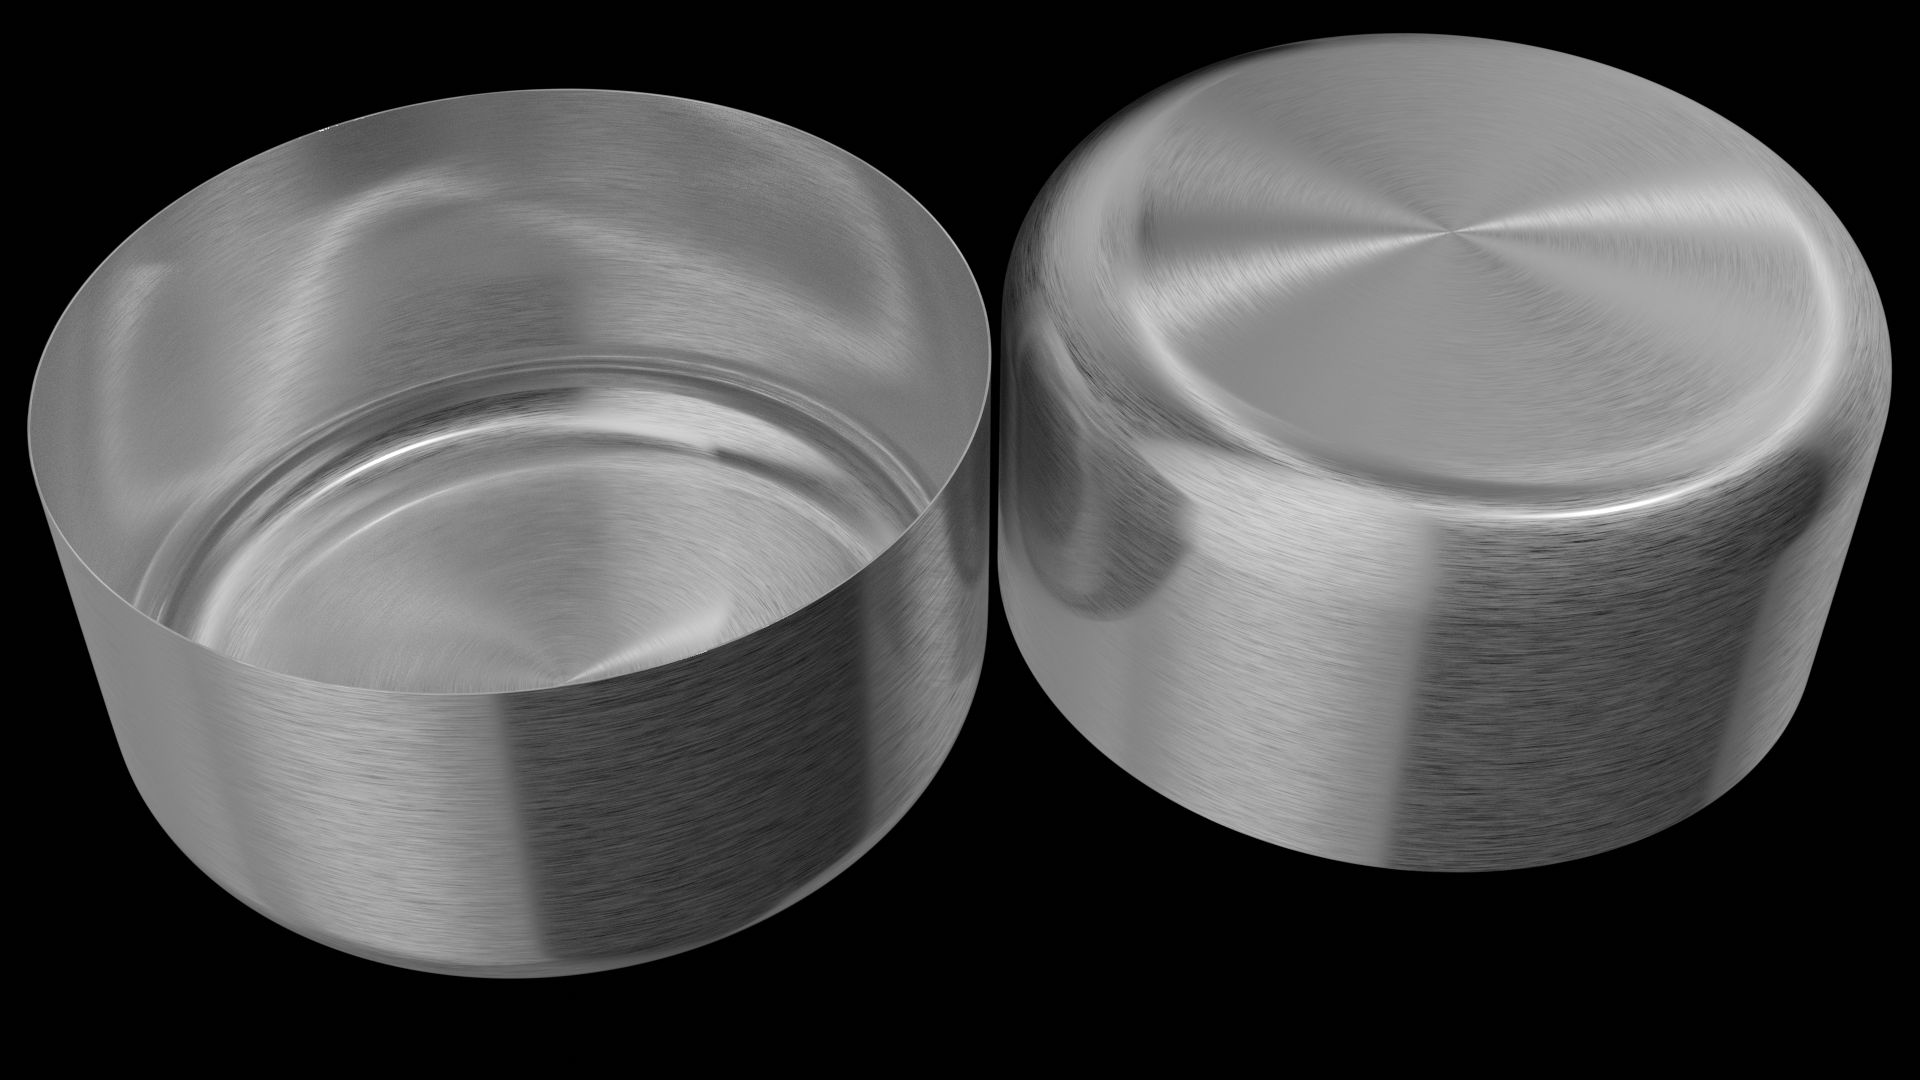 Cylindrical Brushed Metal preview image 1